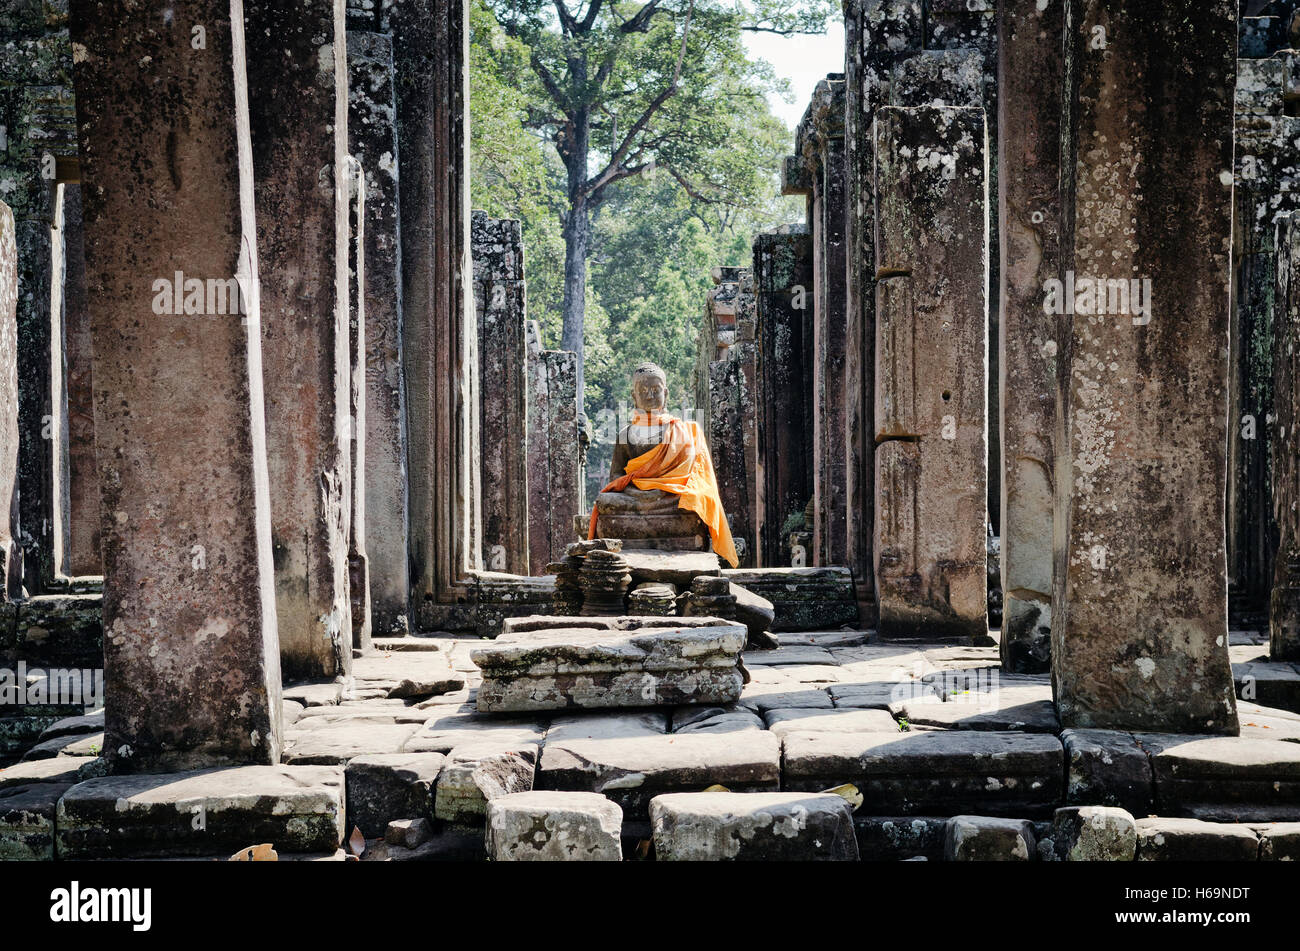 cambodian ancient buddha statue in famous landmark angkor wat temple siem reap cambodia Stock Photo